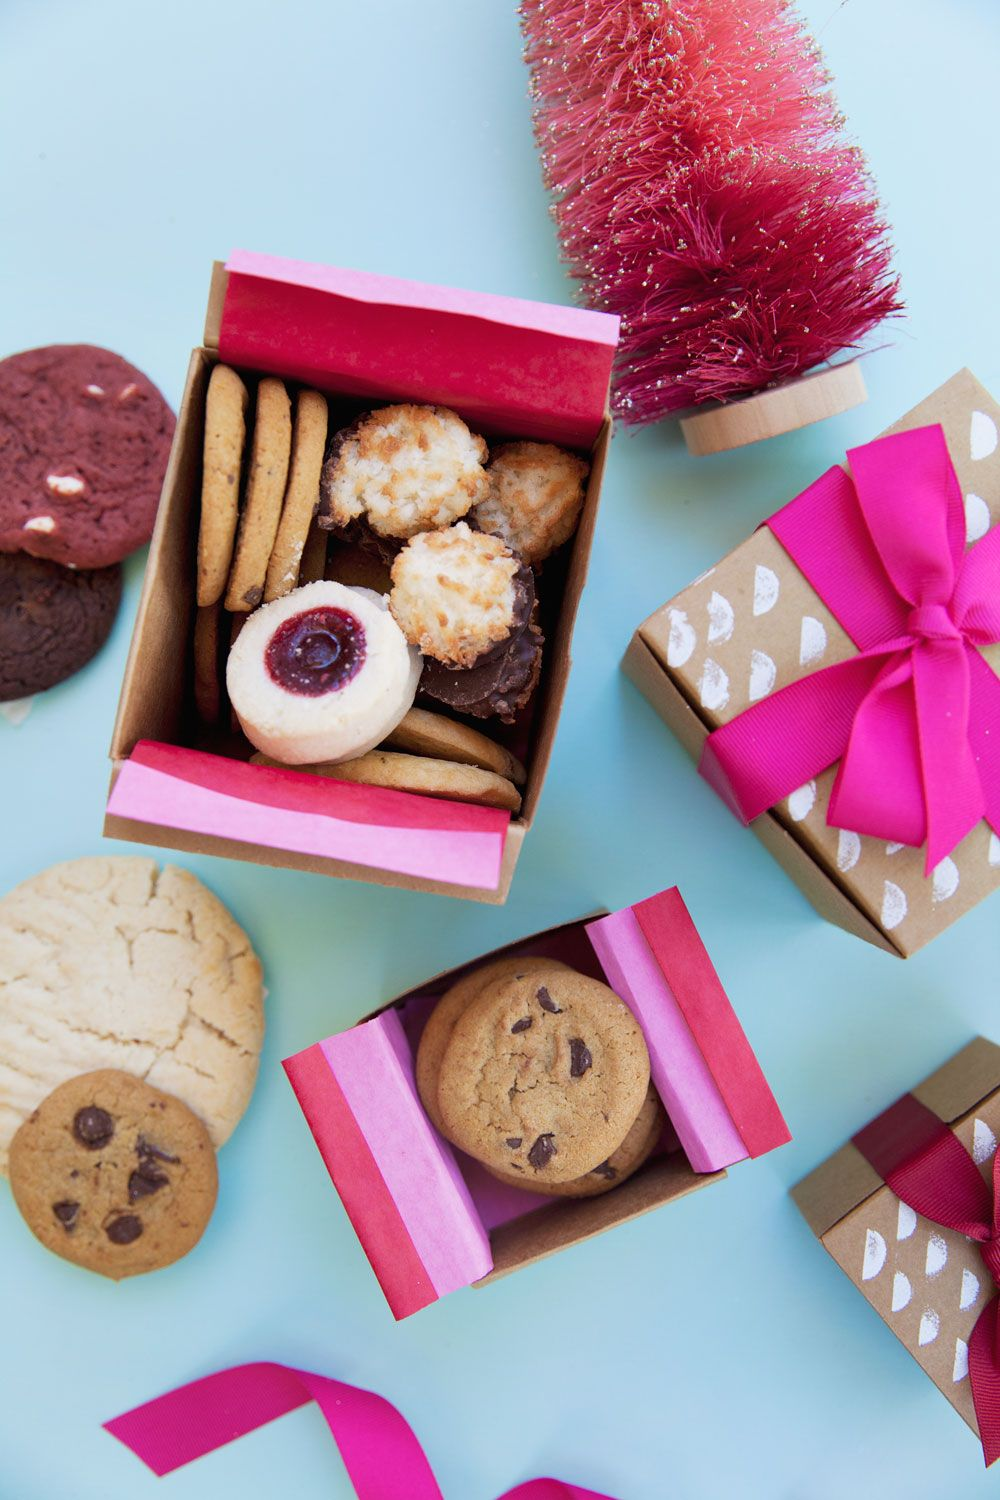 DIY COOKIE GIFT BOXES Cookie gift boxes, Cookie gifts, Gifts